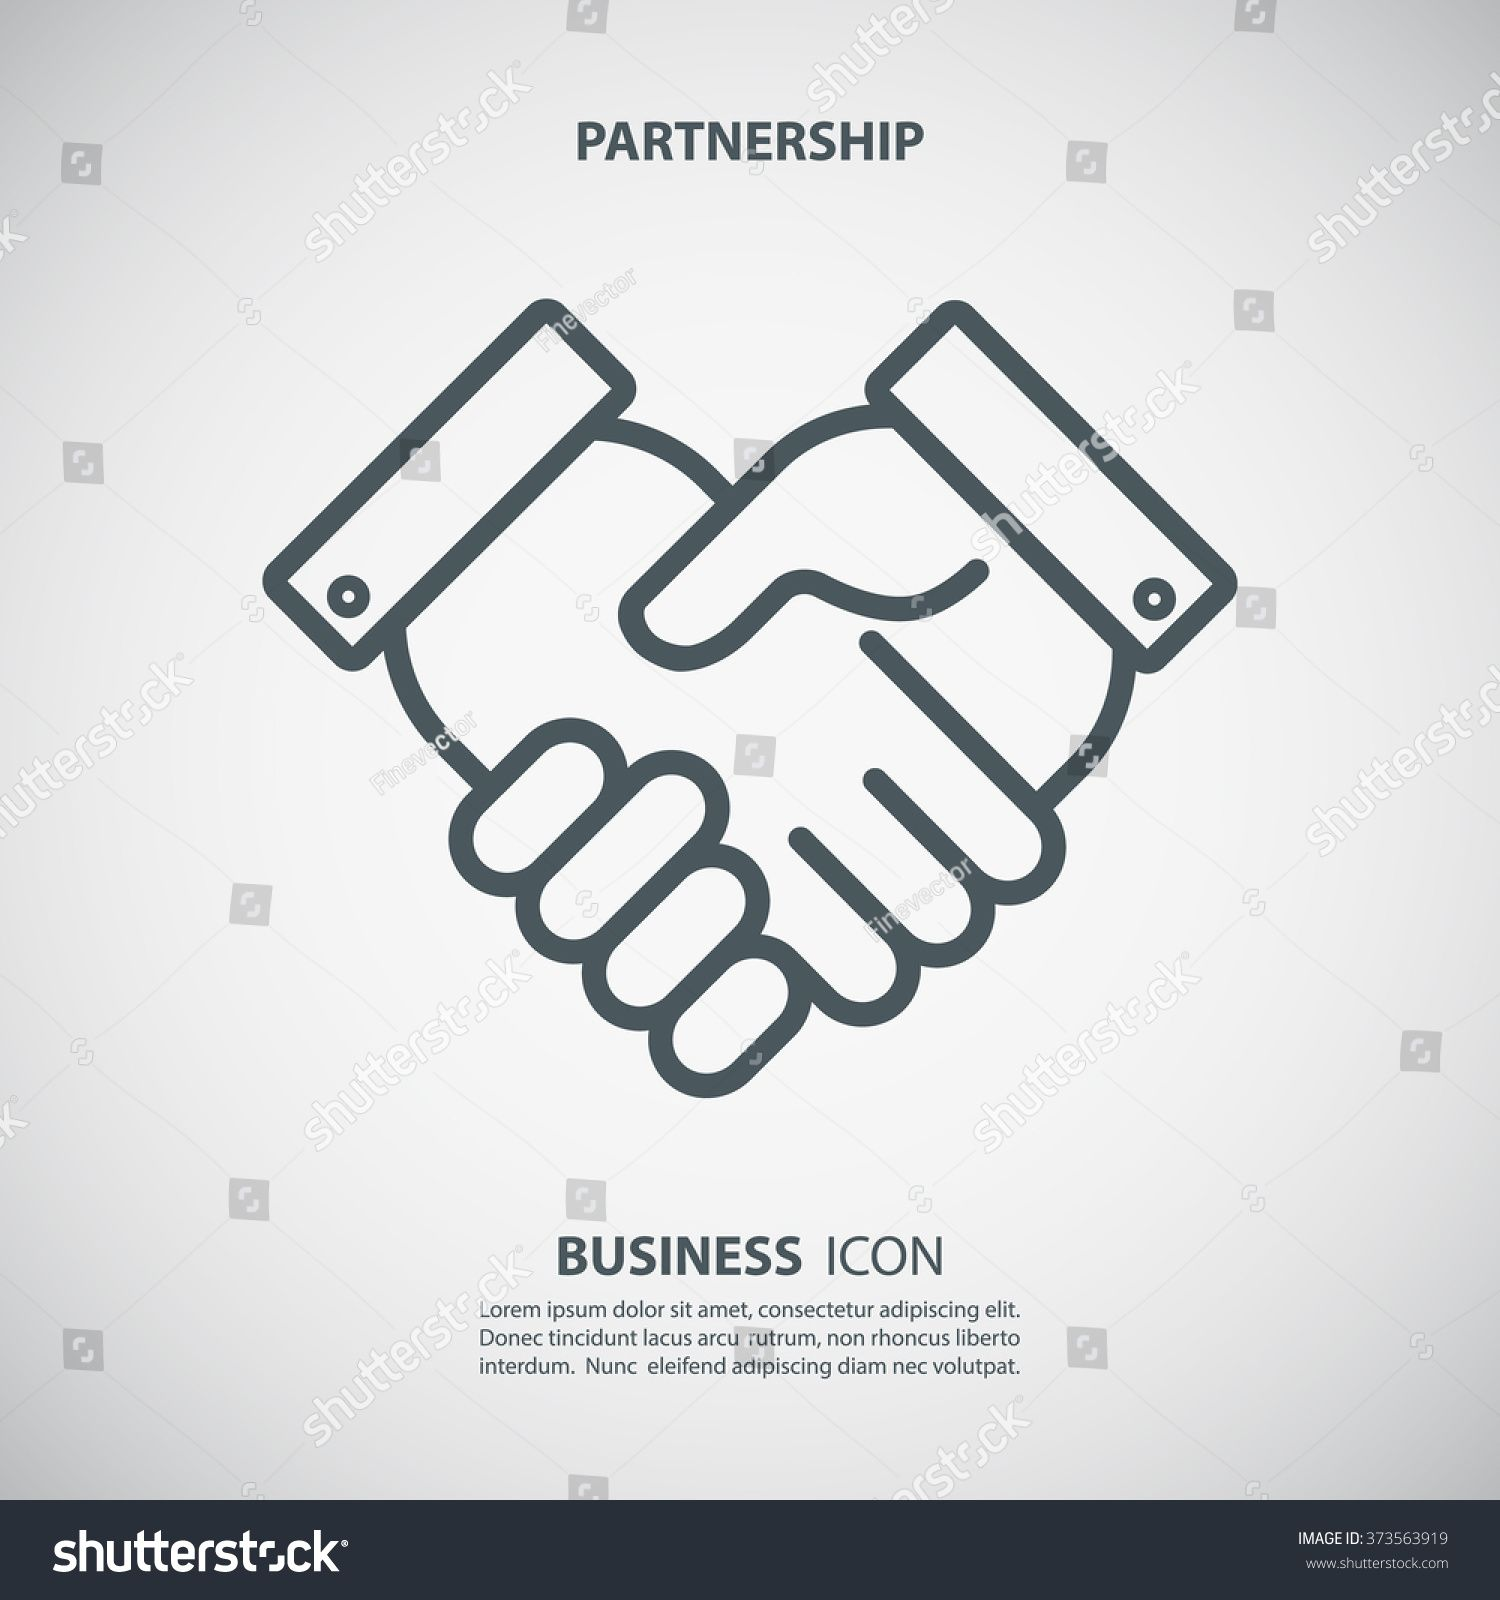 Partnership Icon Handshake Icon Teamwork And Friendship Business Concept Flat Vector Illustration Sponsored Sponsored Te Business Icon Teamwork Icon